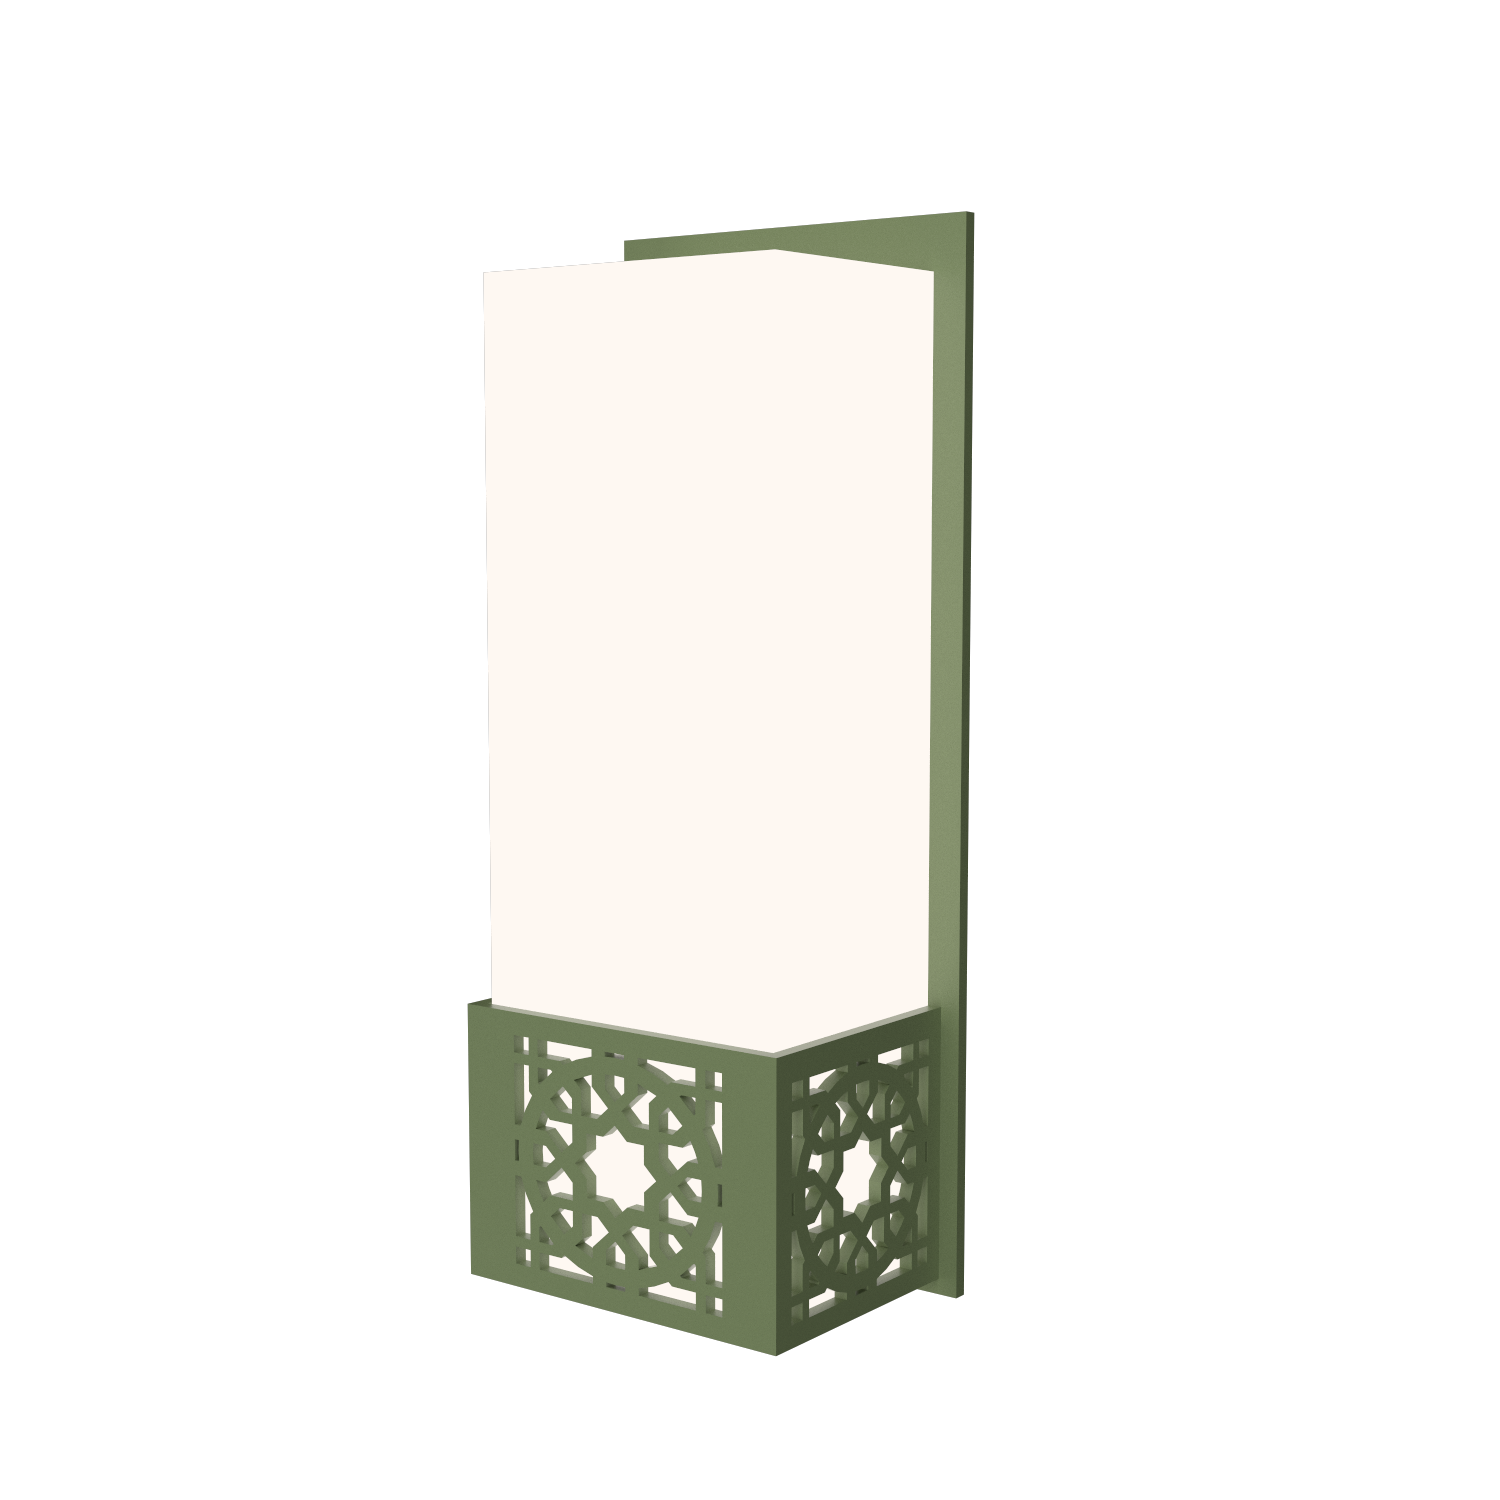 Wall Lamp Accord Patterns 4052 - Patterns Line Accord Lighting | 30. Olive Green